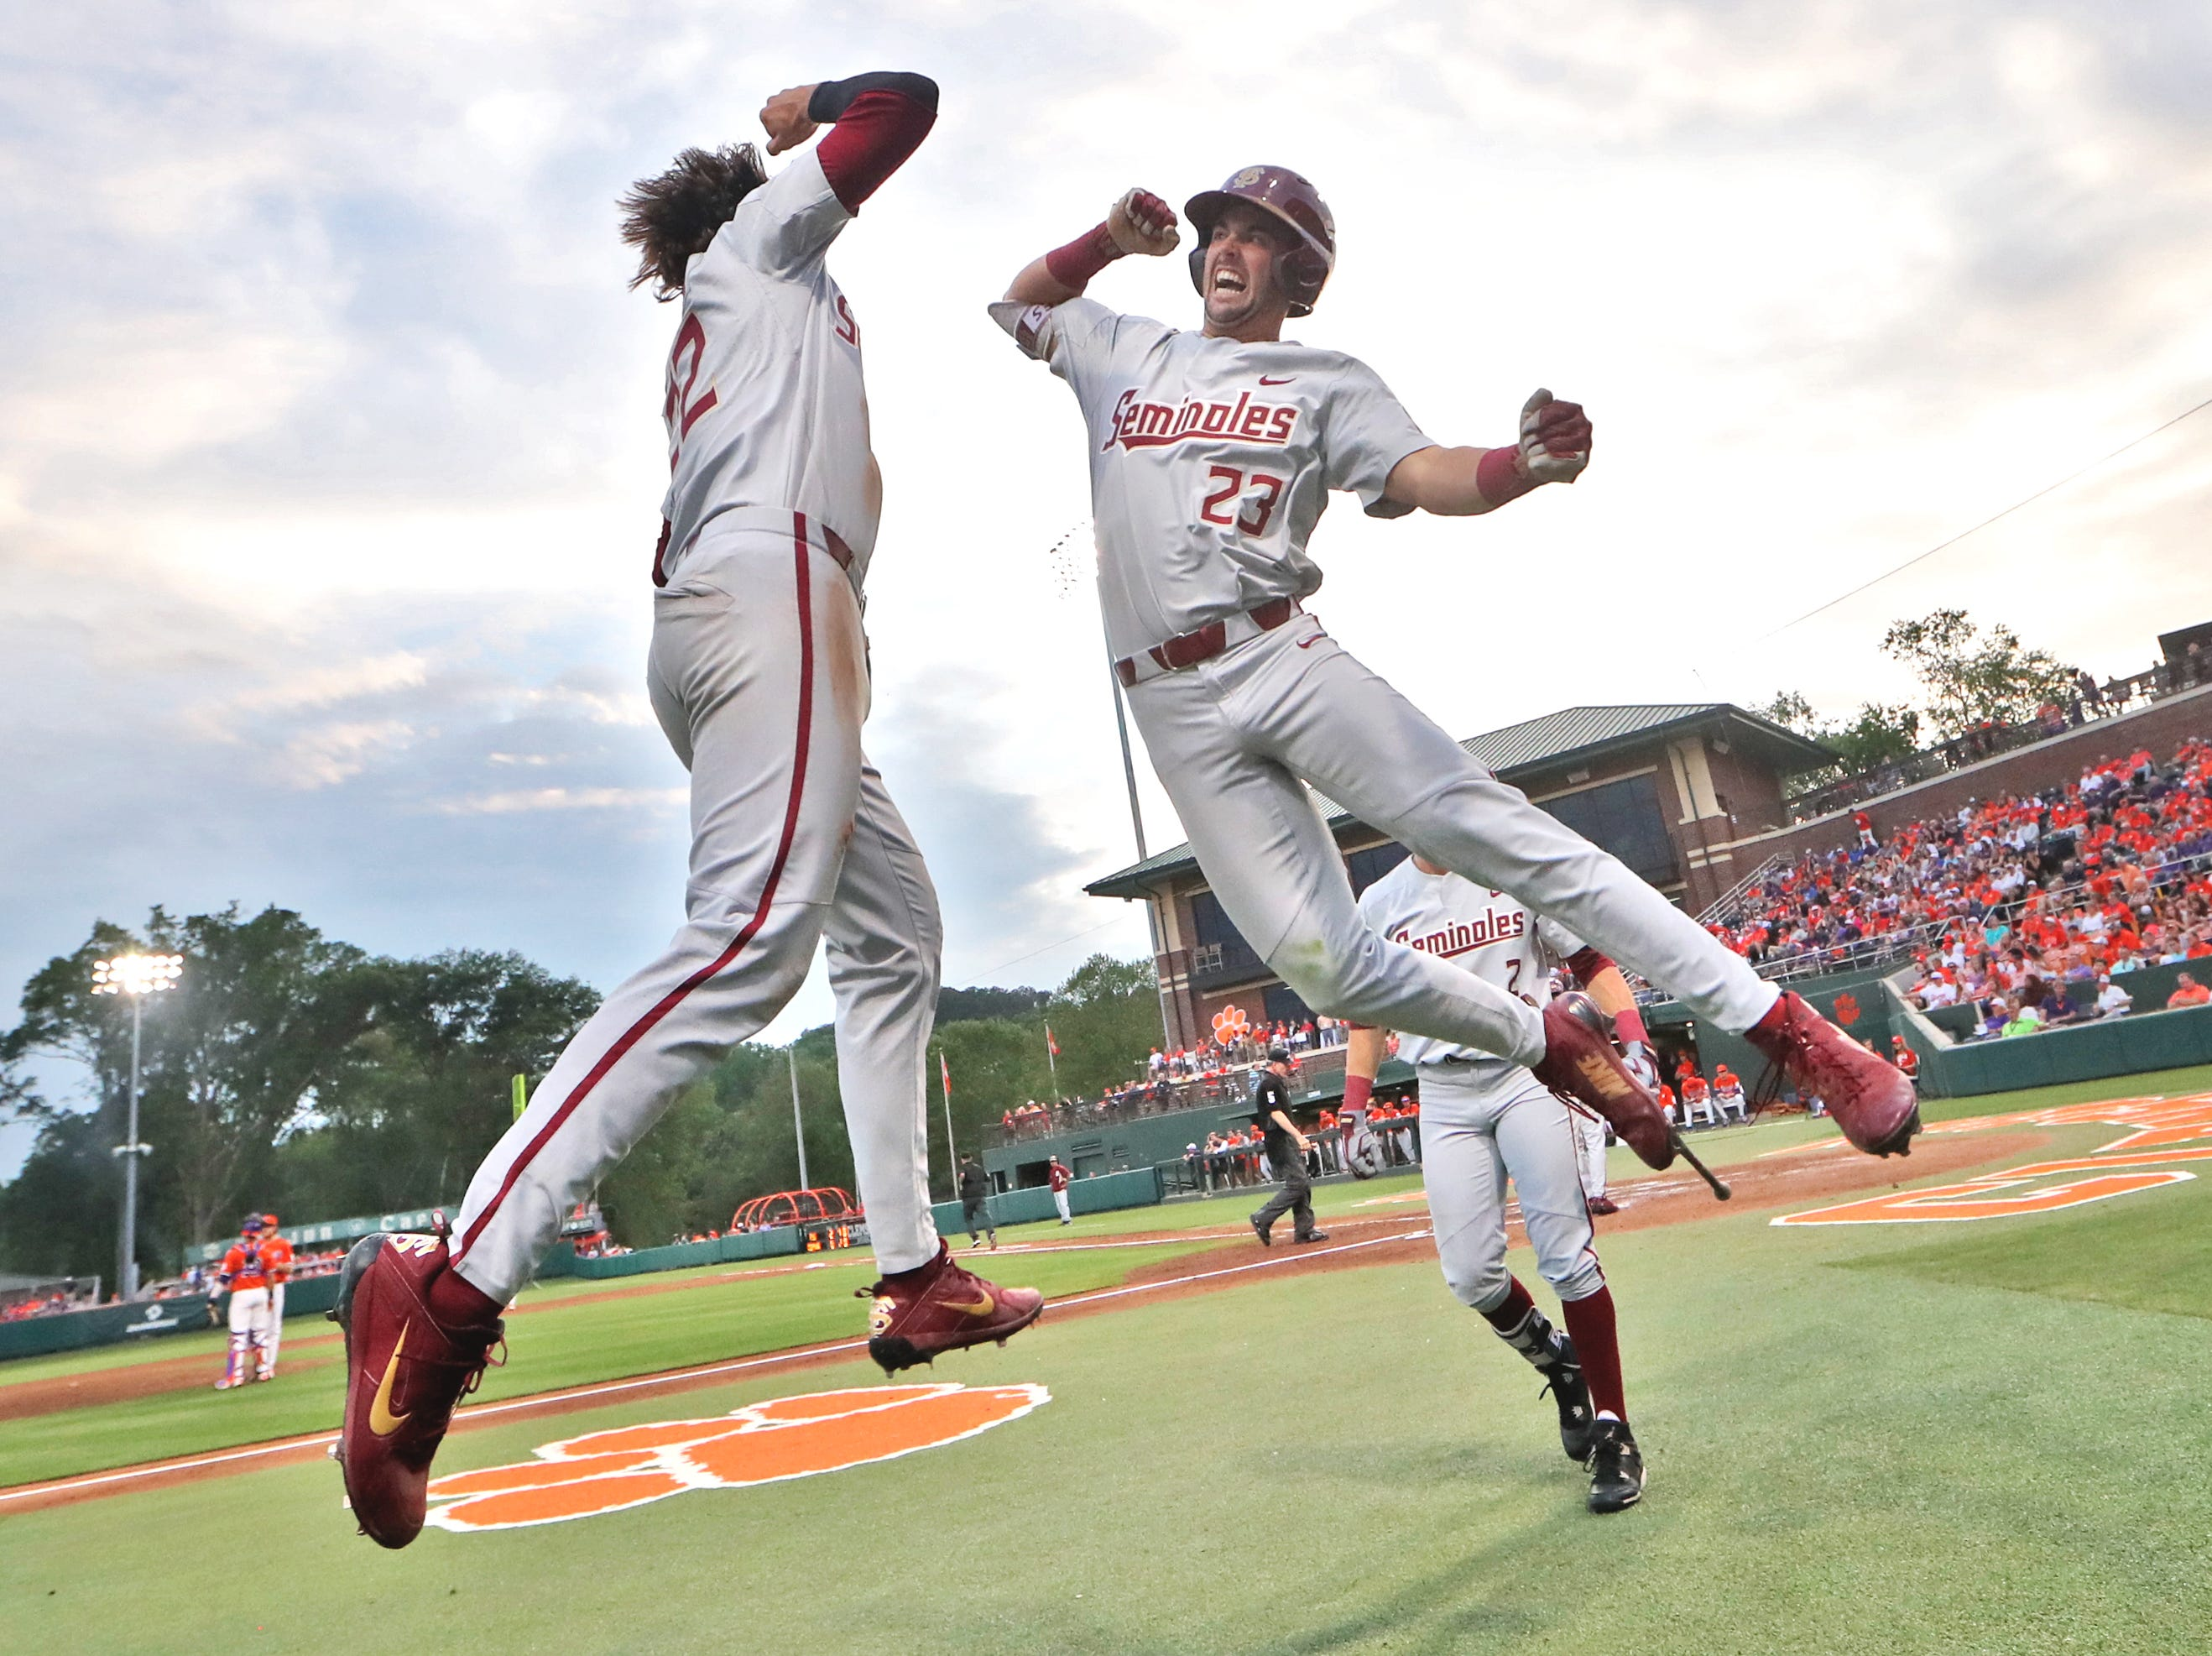 FSU's Drew Mendoza, left, leaps in the air to meet Reese Albert after he hit a solo home run against Clemson at Doug Kingsmore Stadium in Clemson, S.C. on Saturday, May 5, 2018.